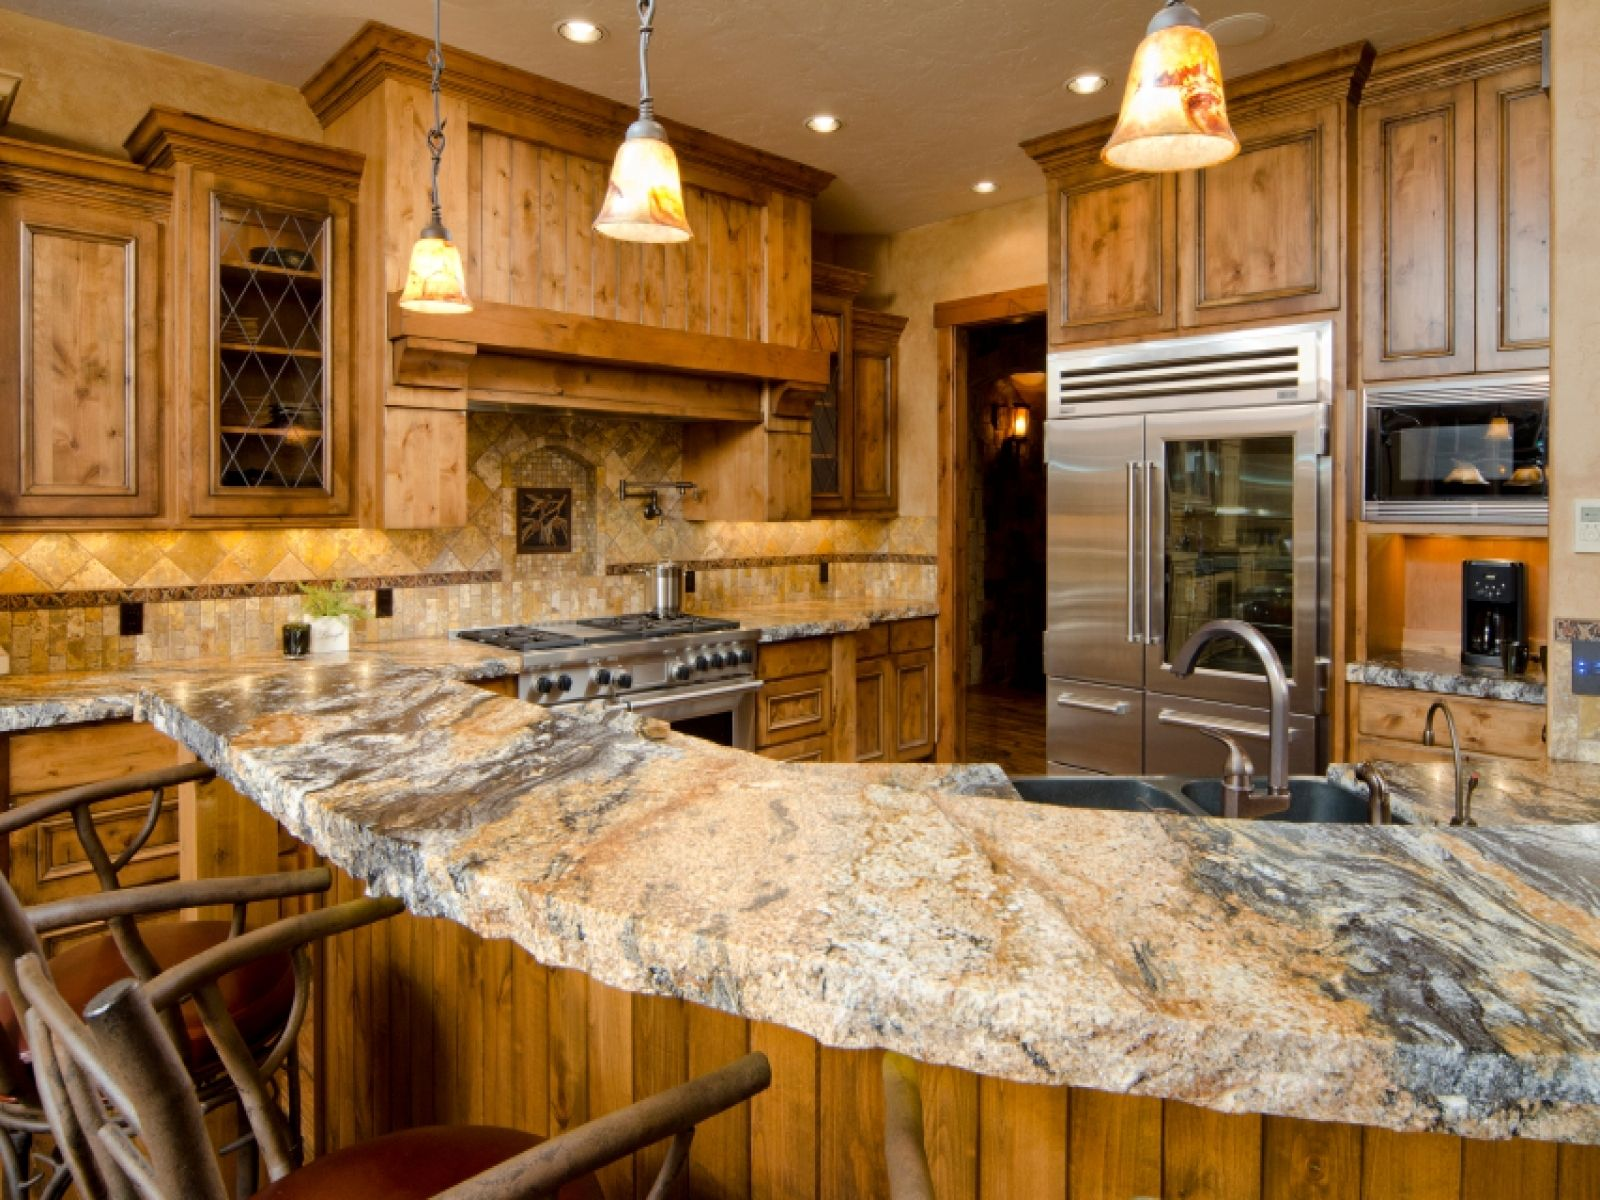 Captivating Decorating With Oak Cabinets | Kitchen Countertops | Pics Picture Of Granite  Countertops In Kitchens .